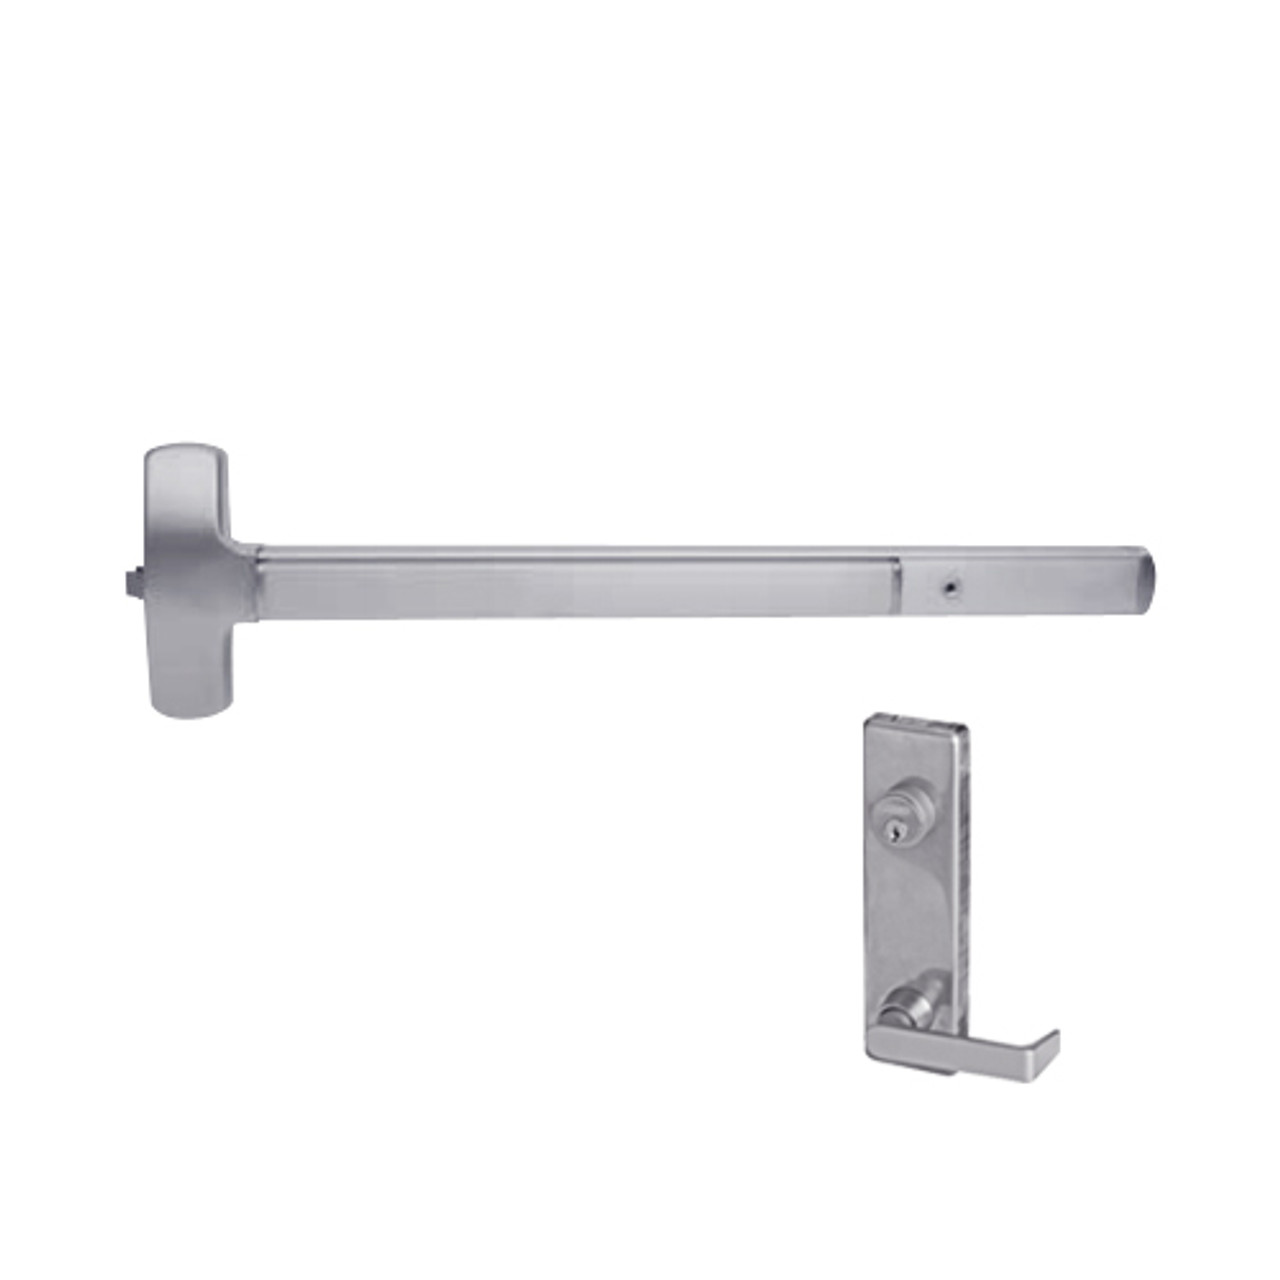 Pack of 1 Sargent 80 Series Satin Stainless Steel Nl Function Exit Device 36 Door Width